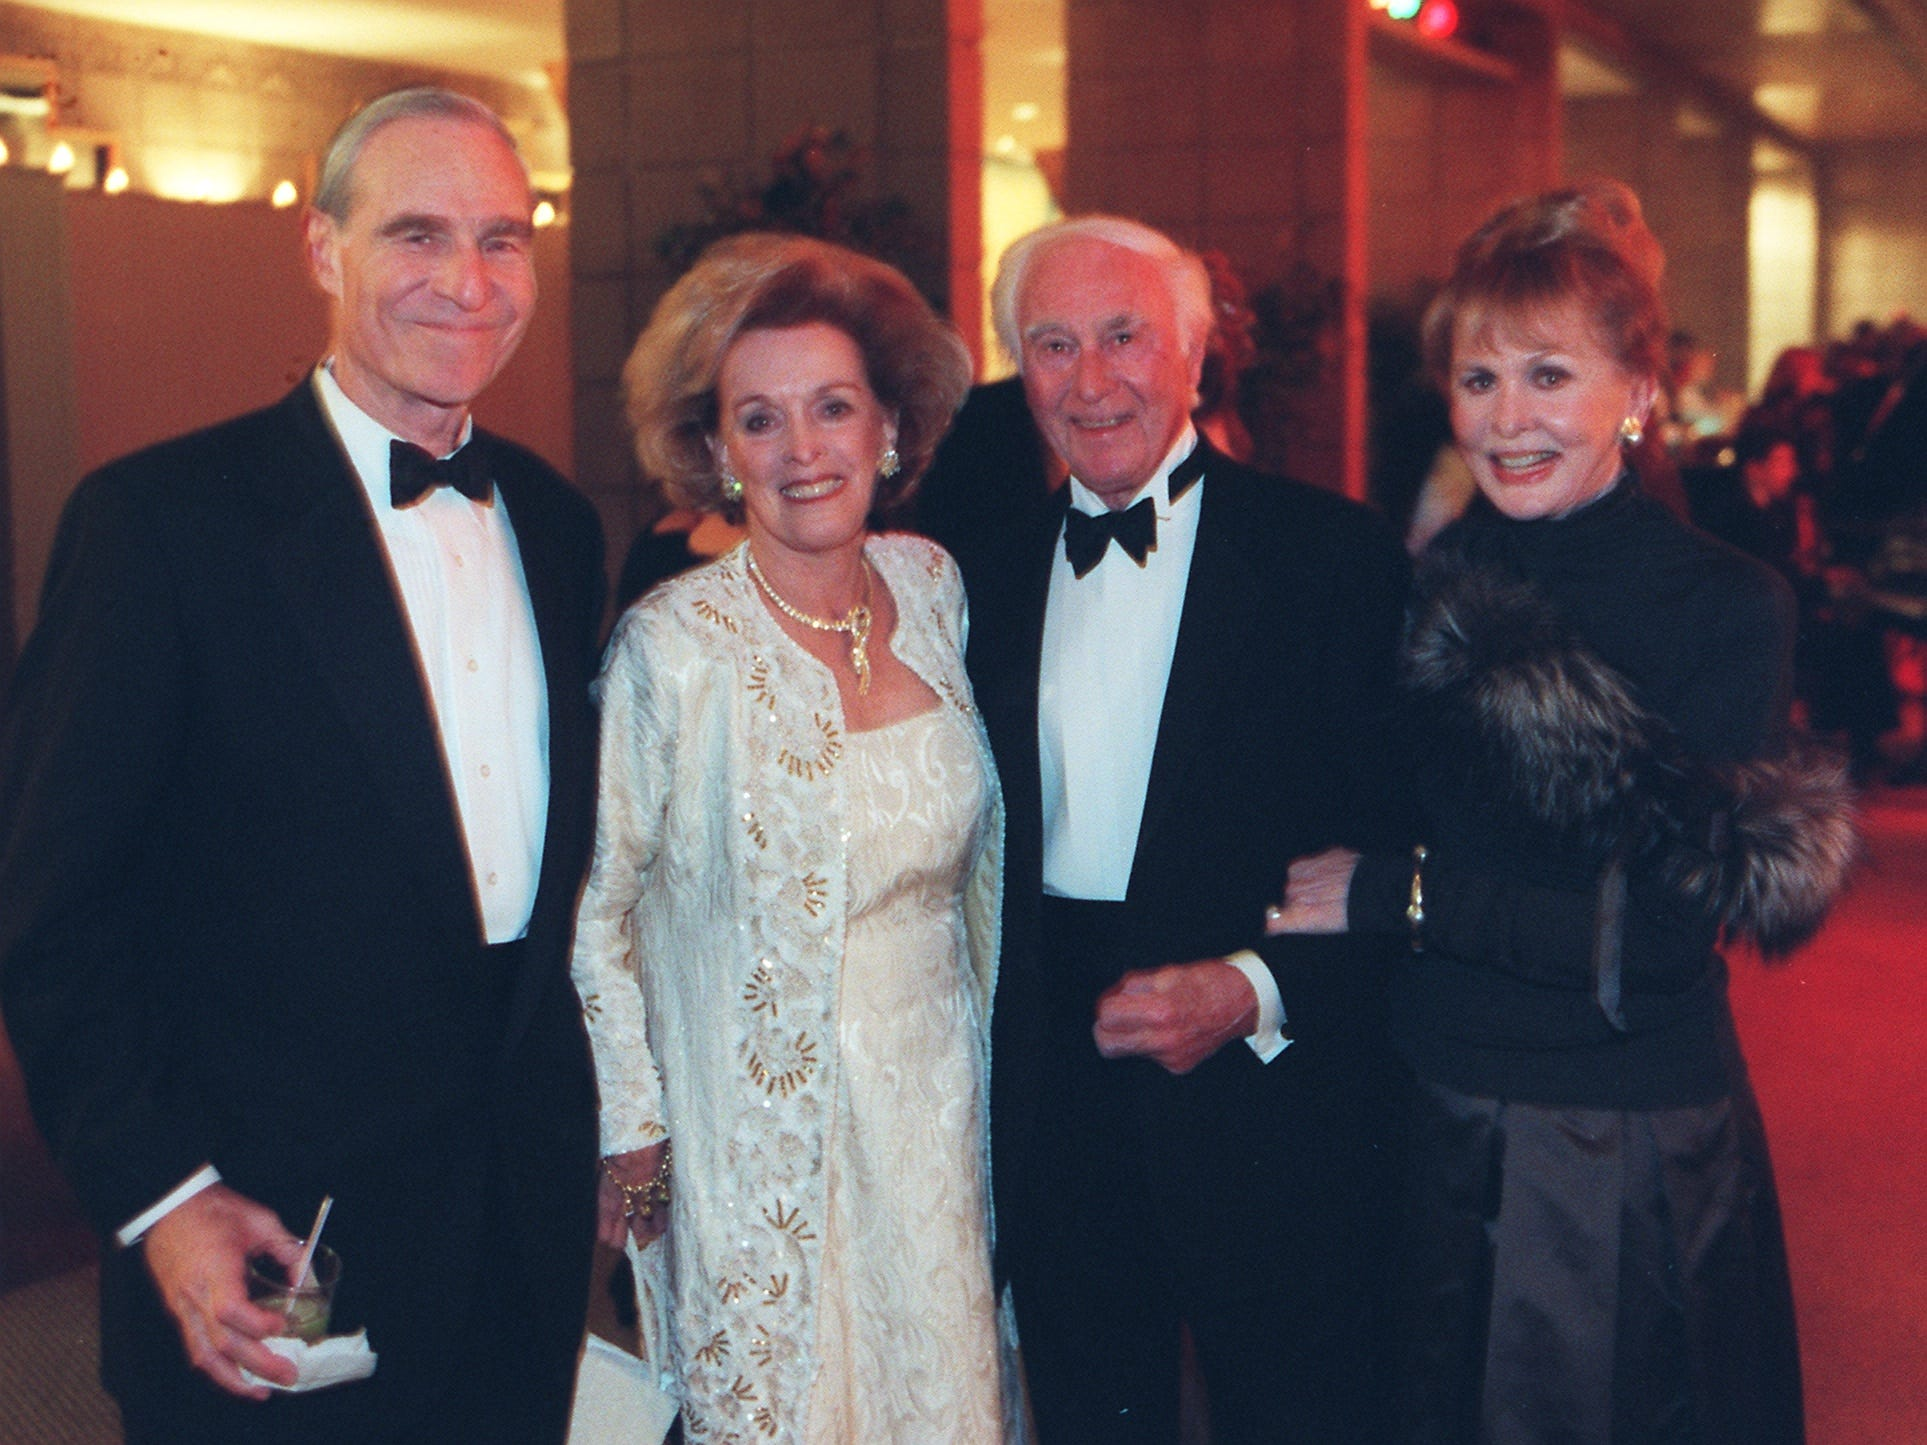 Karl Eller, Stevie Eller, Bob Berry and Kay Berry attend the Barrow Ball at the Arizona Biltmore in January 2000.